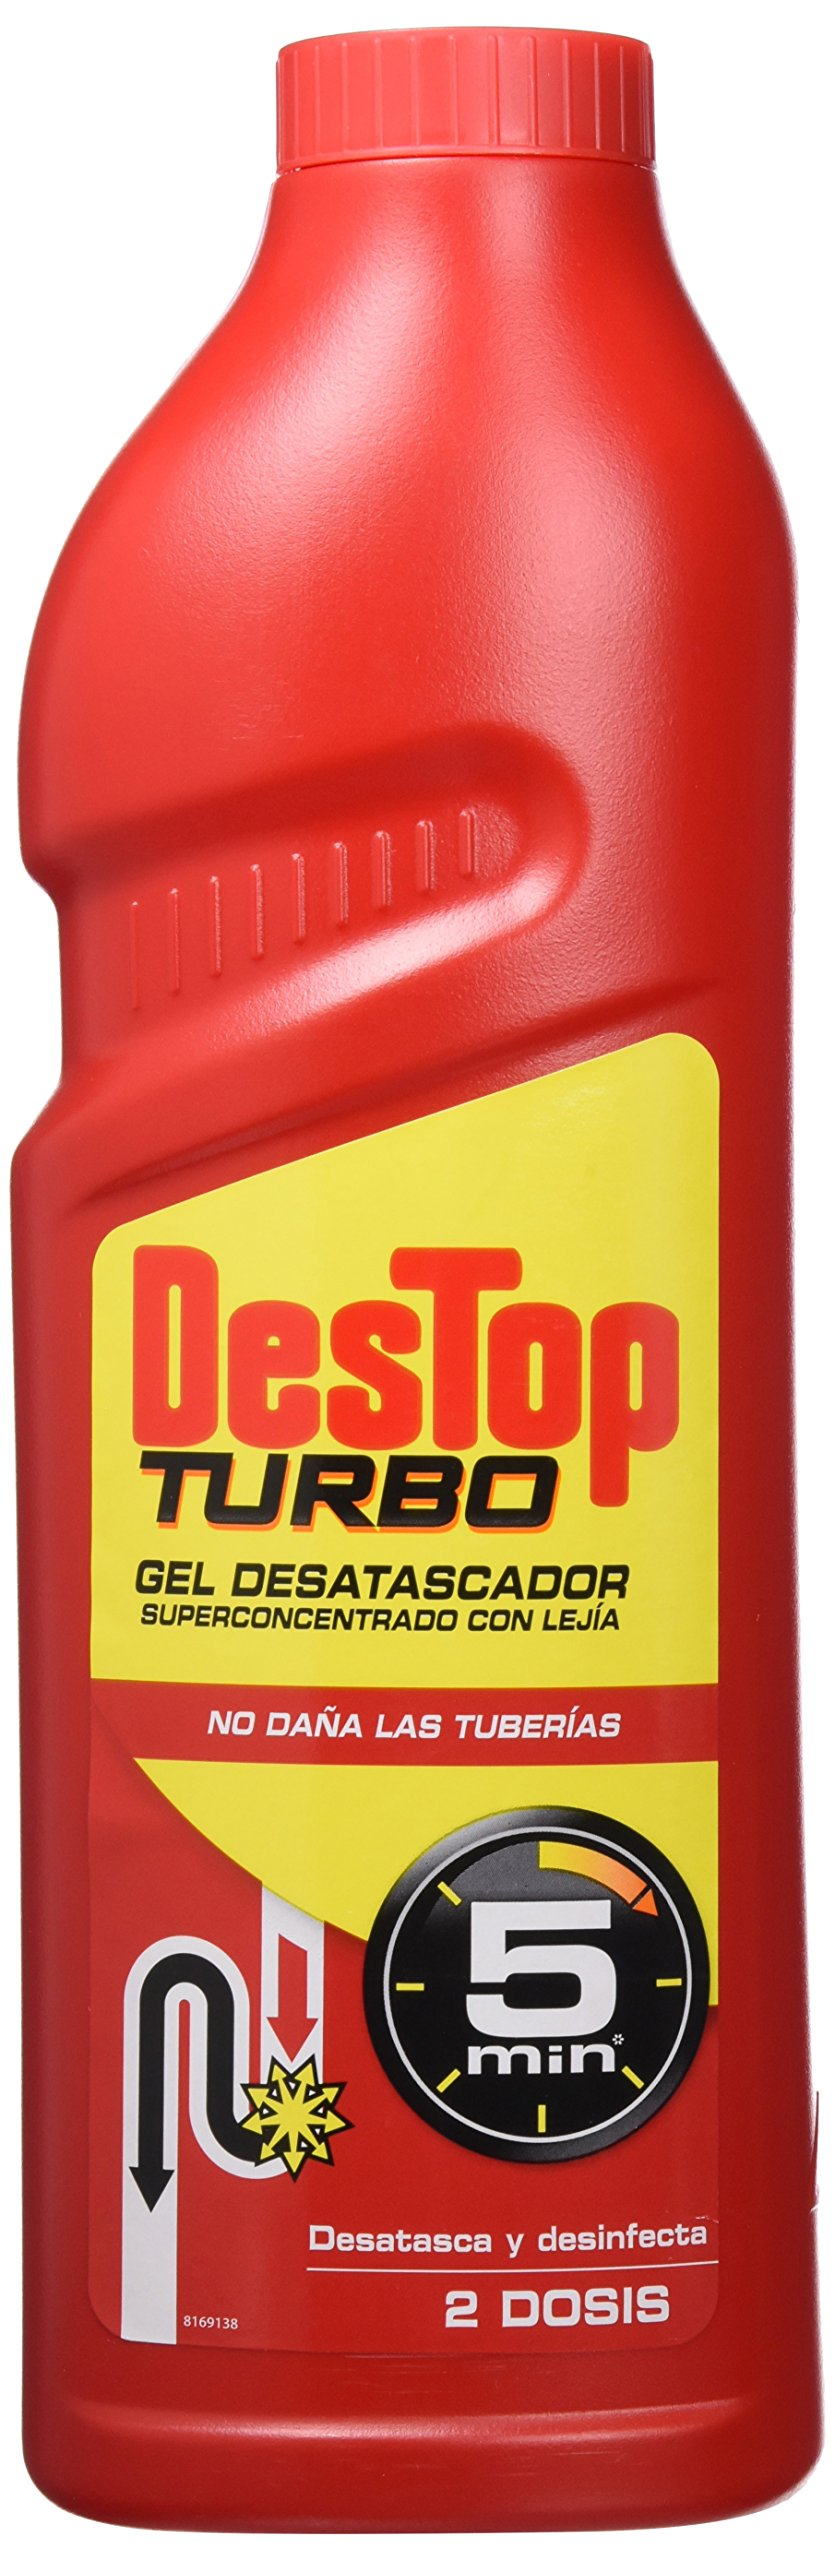 Destop Gel Turbo - 1 l product image